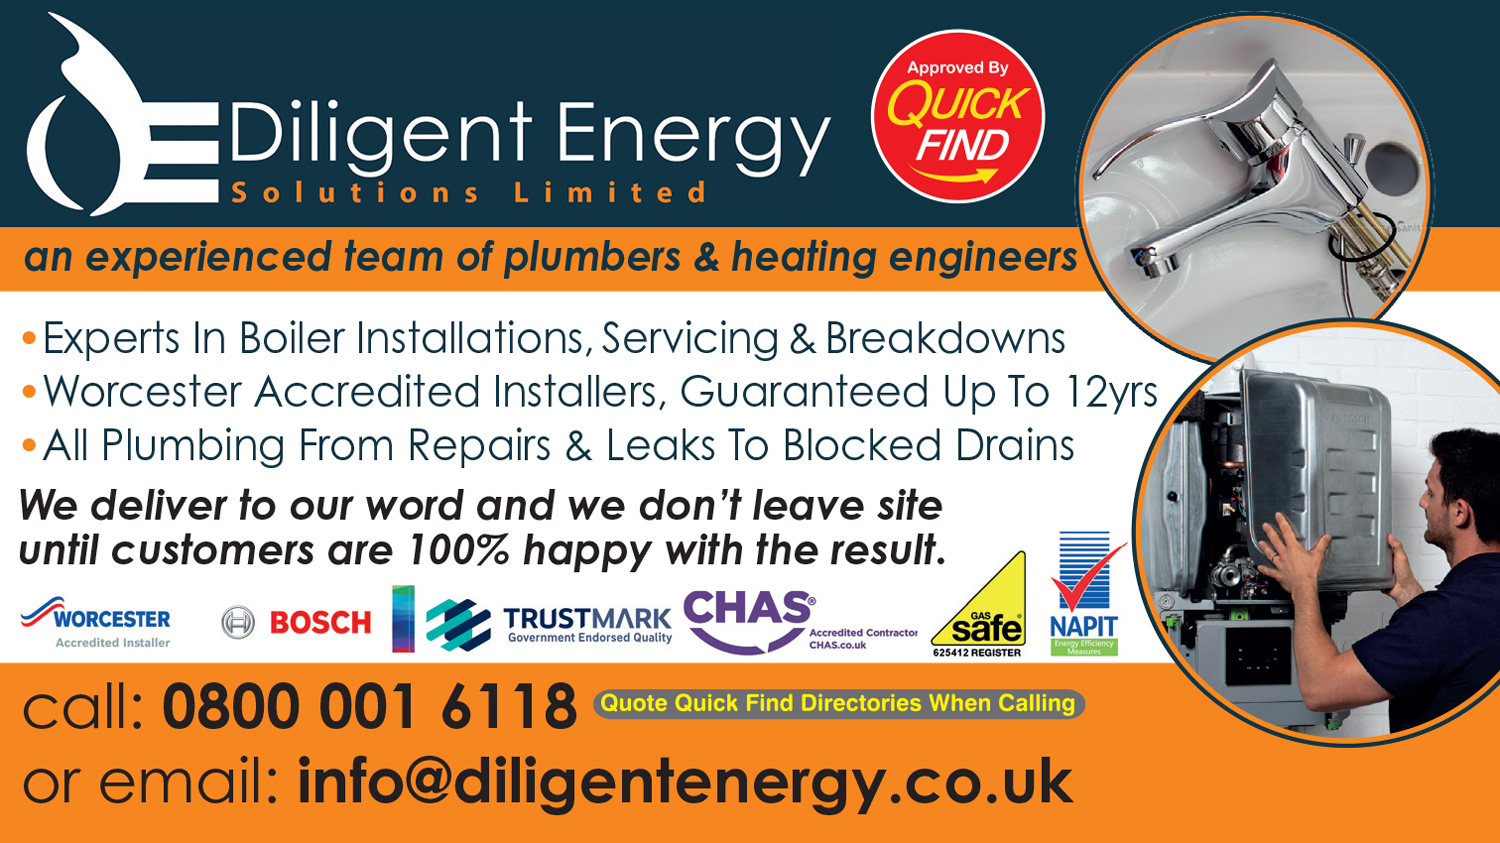 Diligent Energy Solutions Ltd. (Plumbing & Heating Engineers)